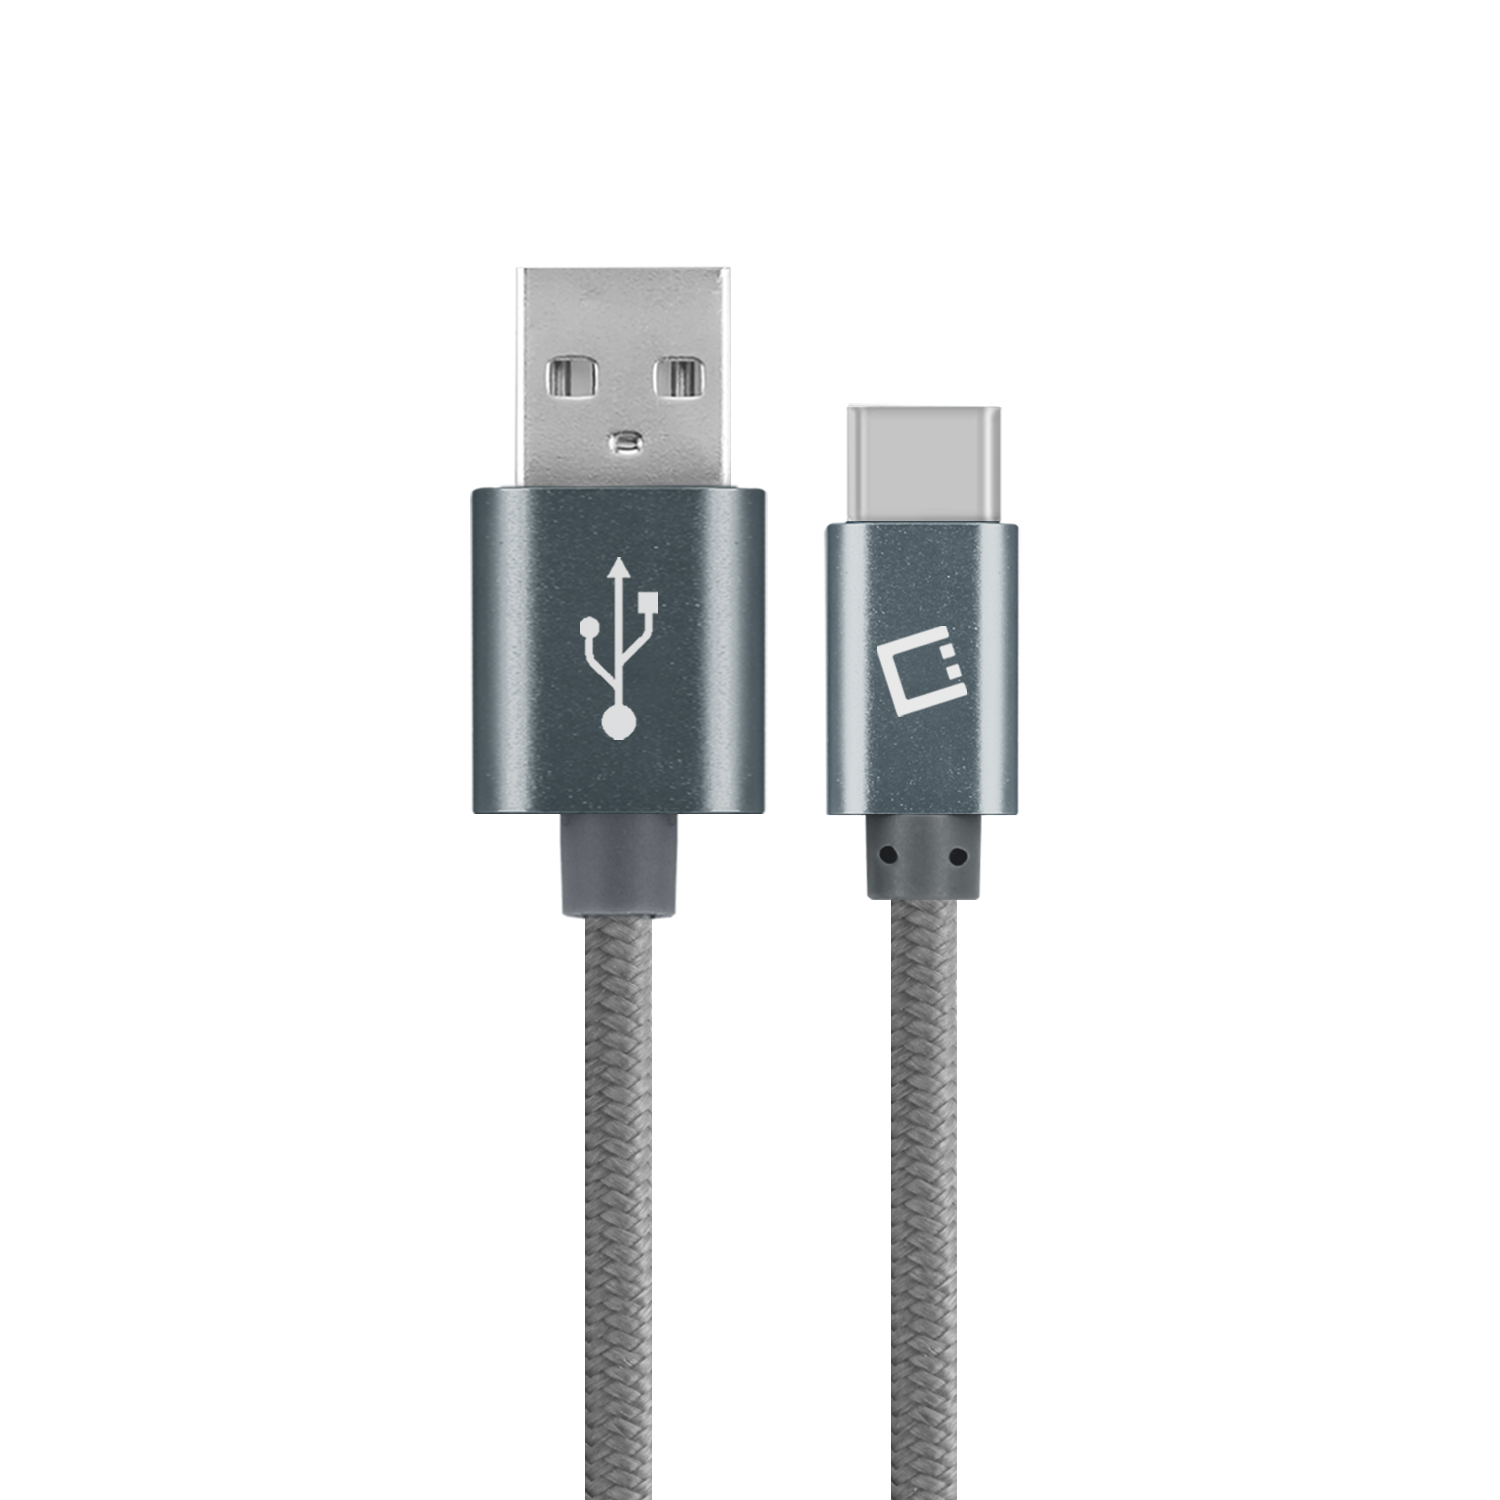 Sony Xperia XA2 Ultra USB Type-C To Type-A Braided Data Power Cable Grey 10ft Braided